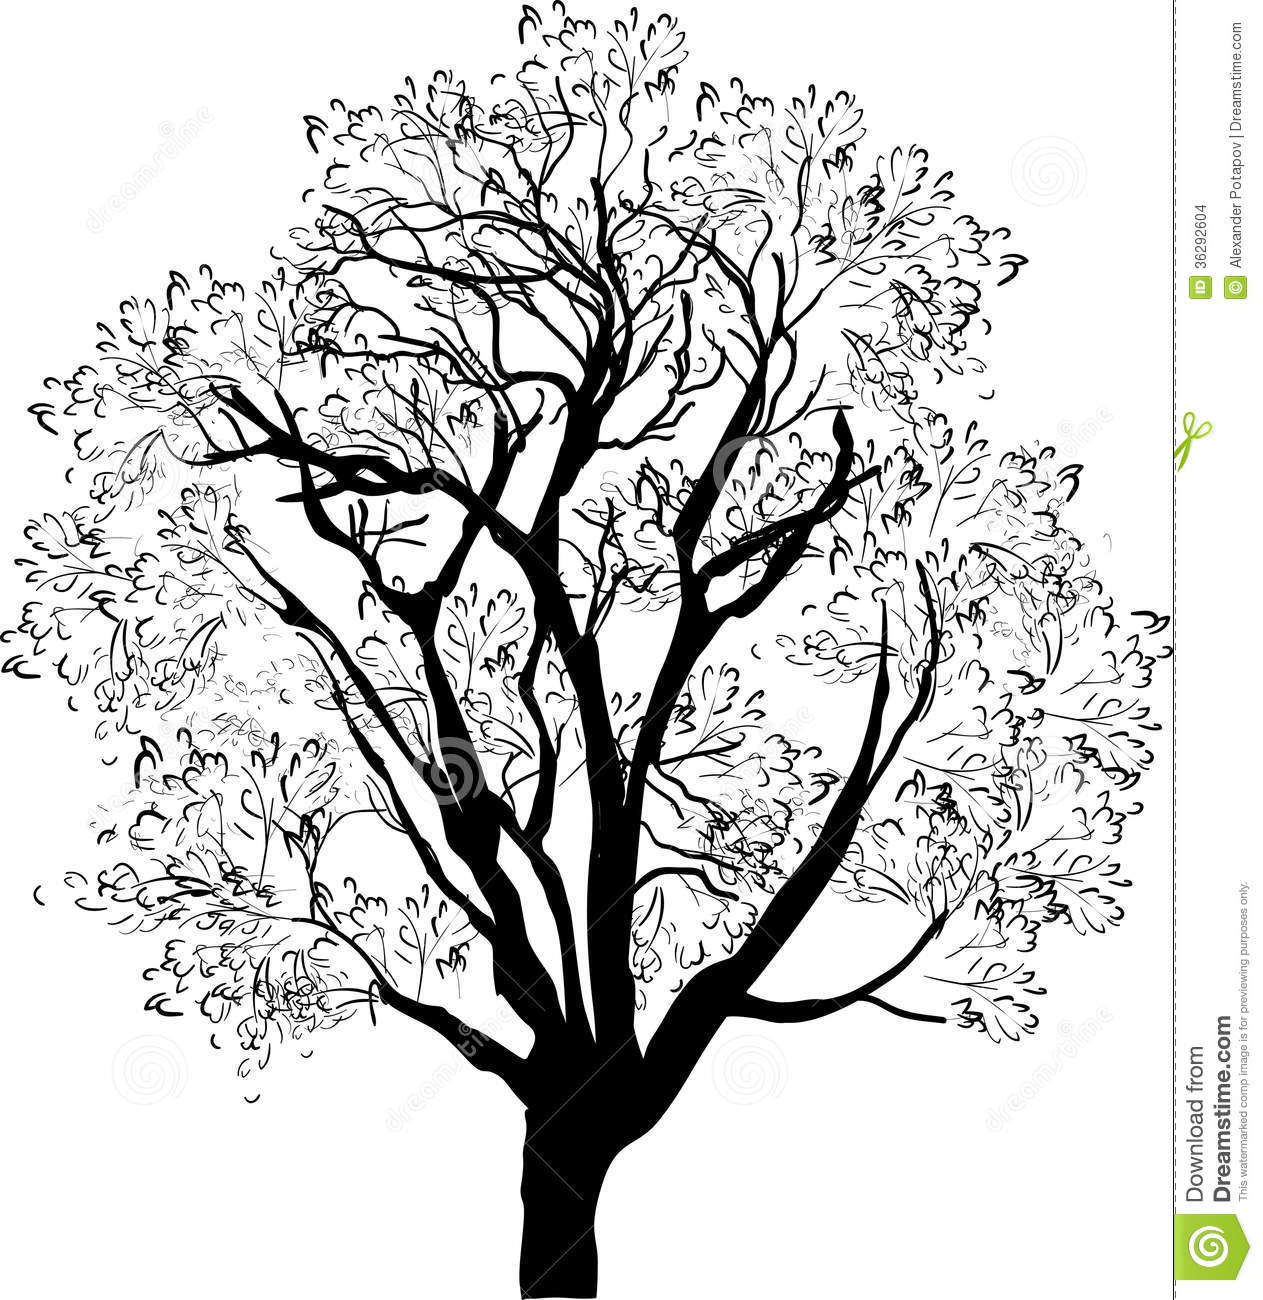 Illustration with tree sketch isolated on white background